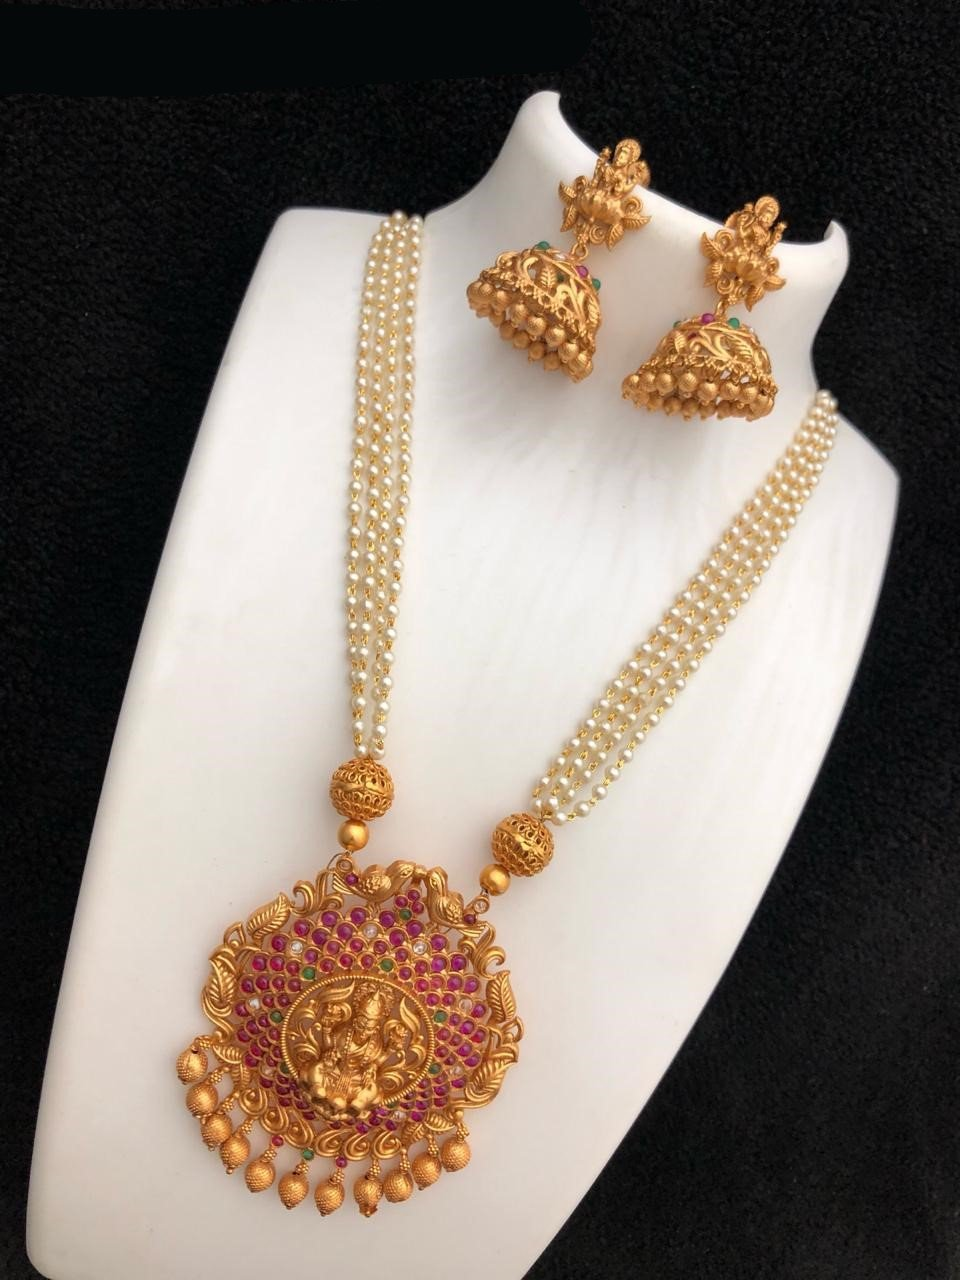 Laxmiji Designed Chandbali Pendant Beads Mala Necklace